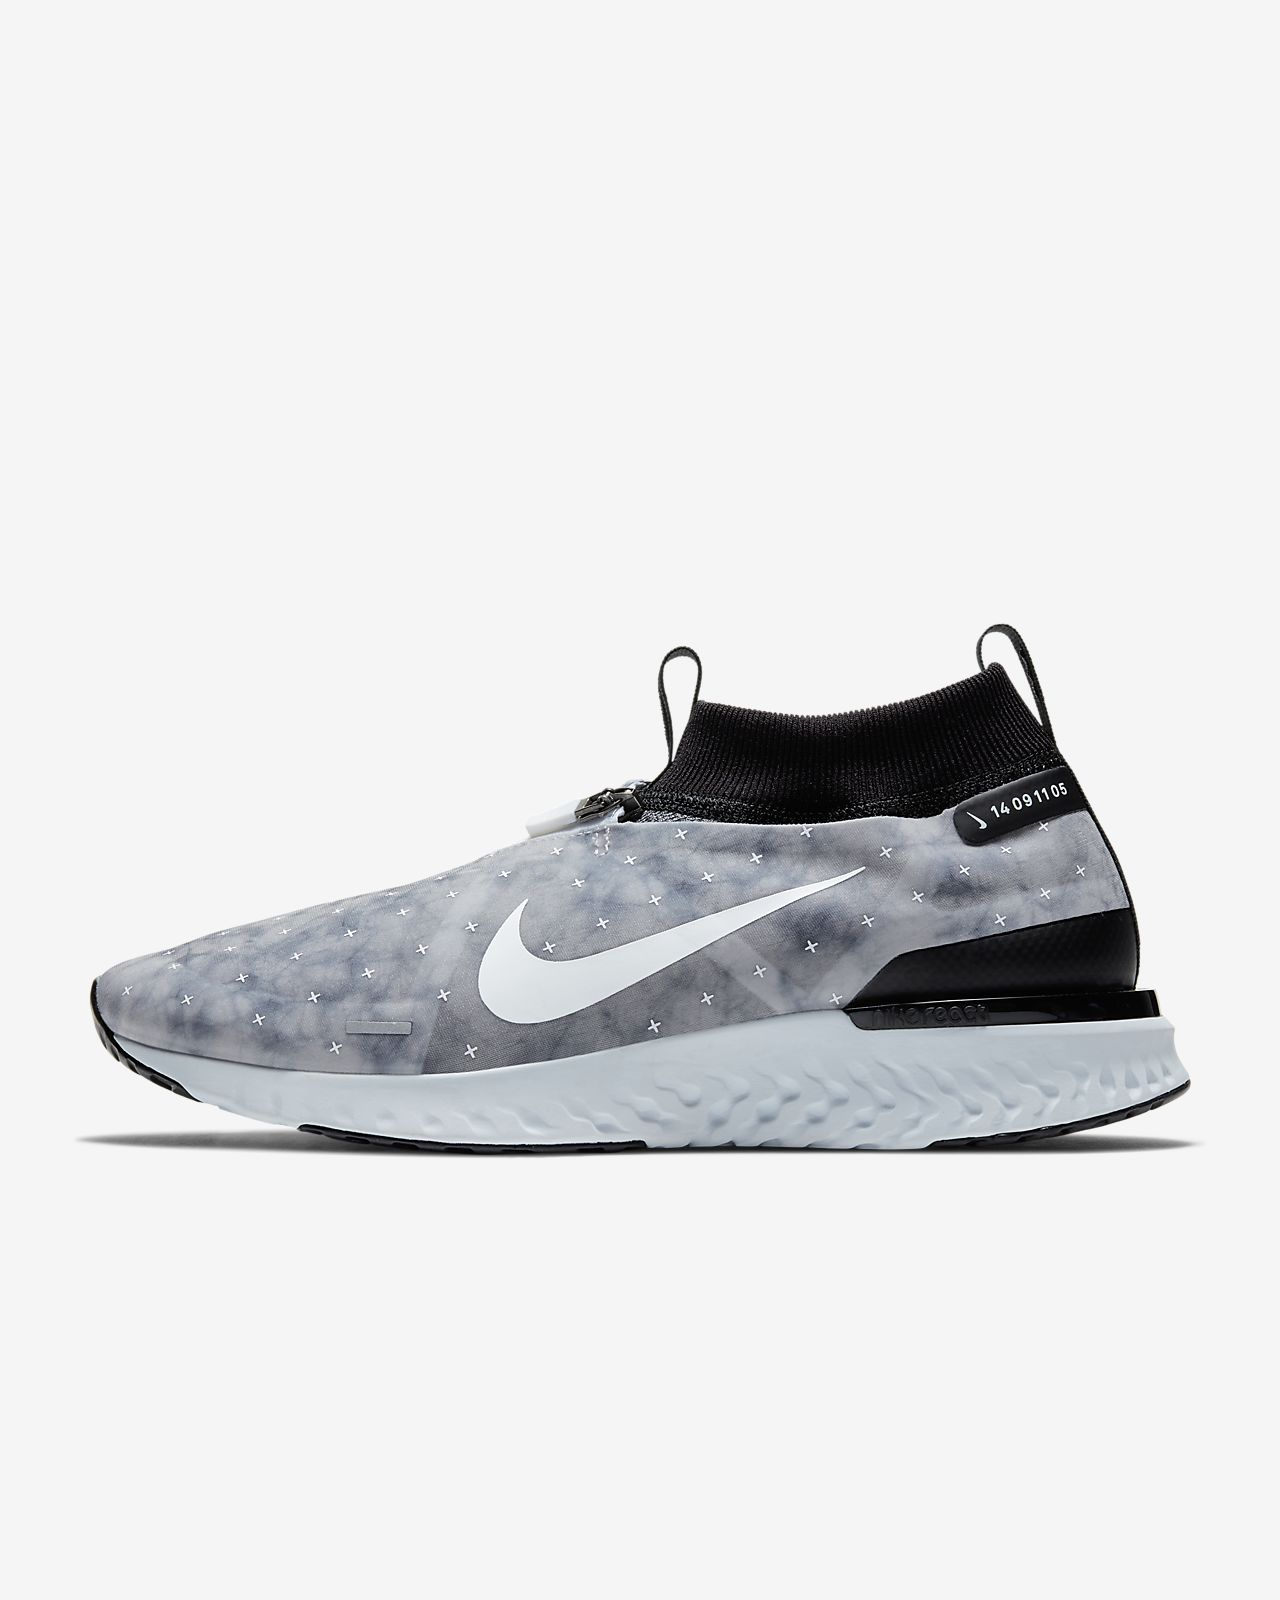 Nike Scarpa da running Nike React City Uomo